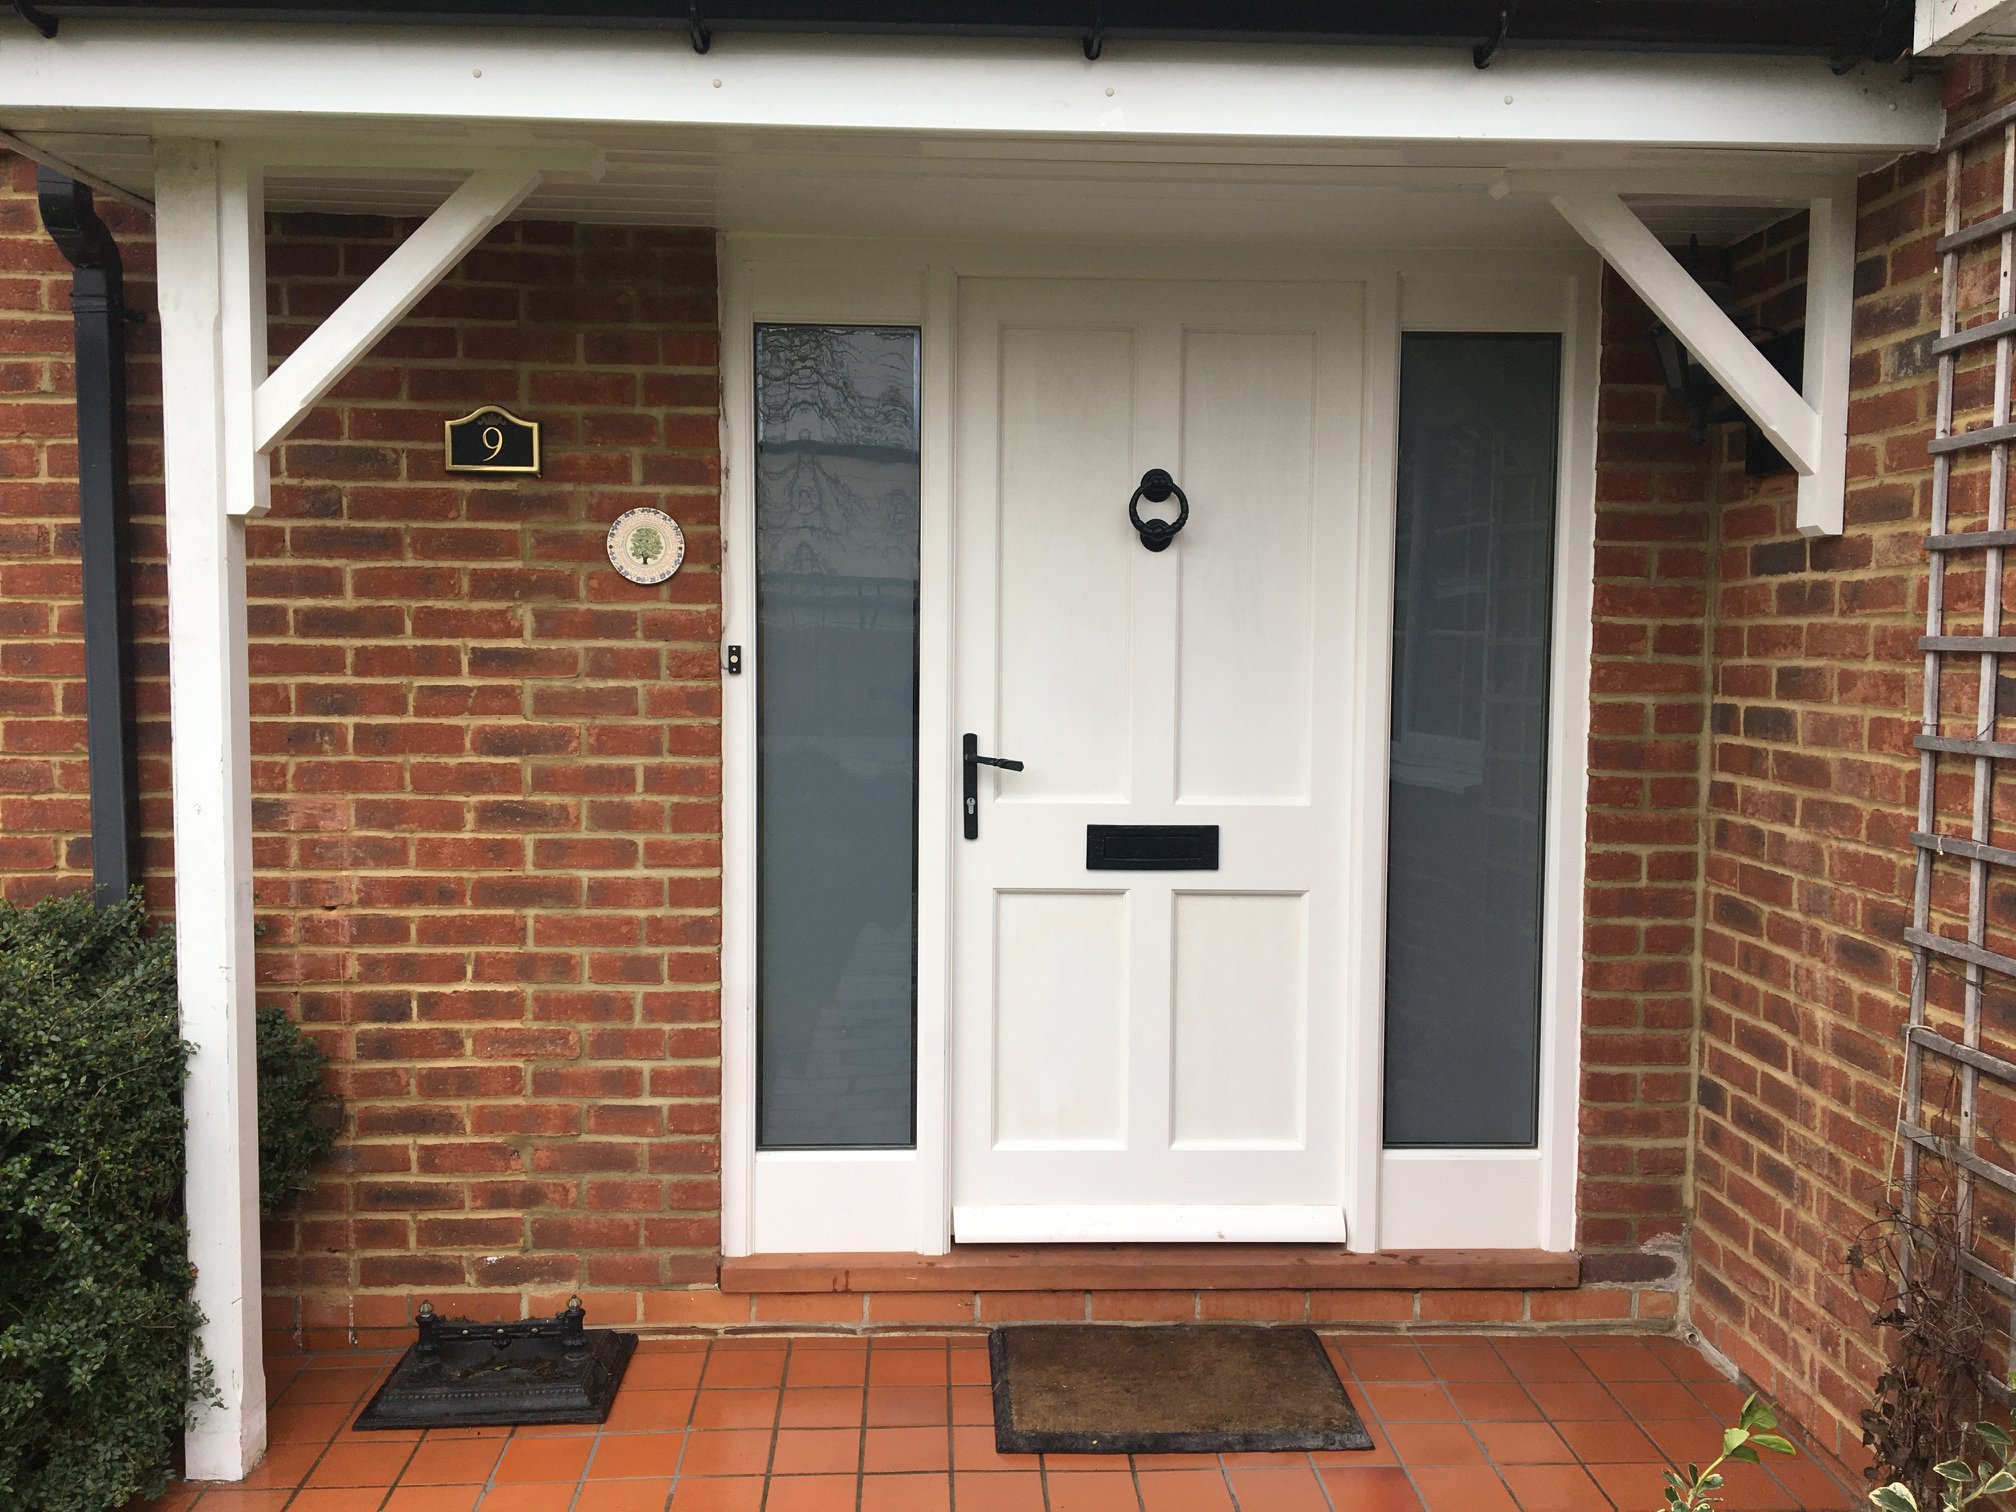 New Entrance Door and Frame